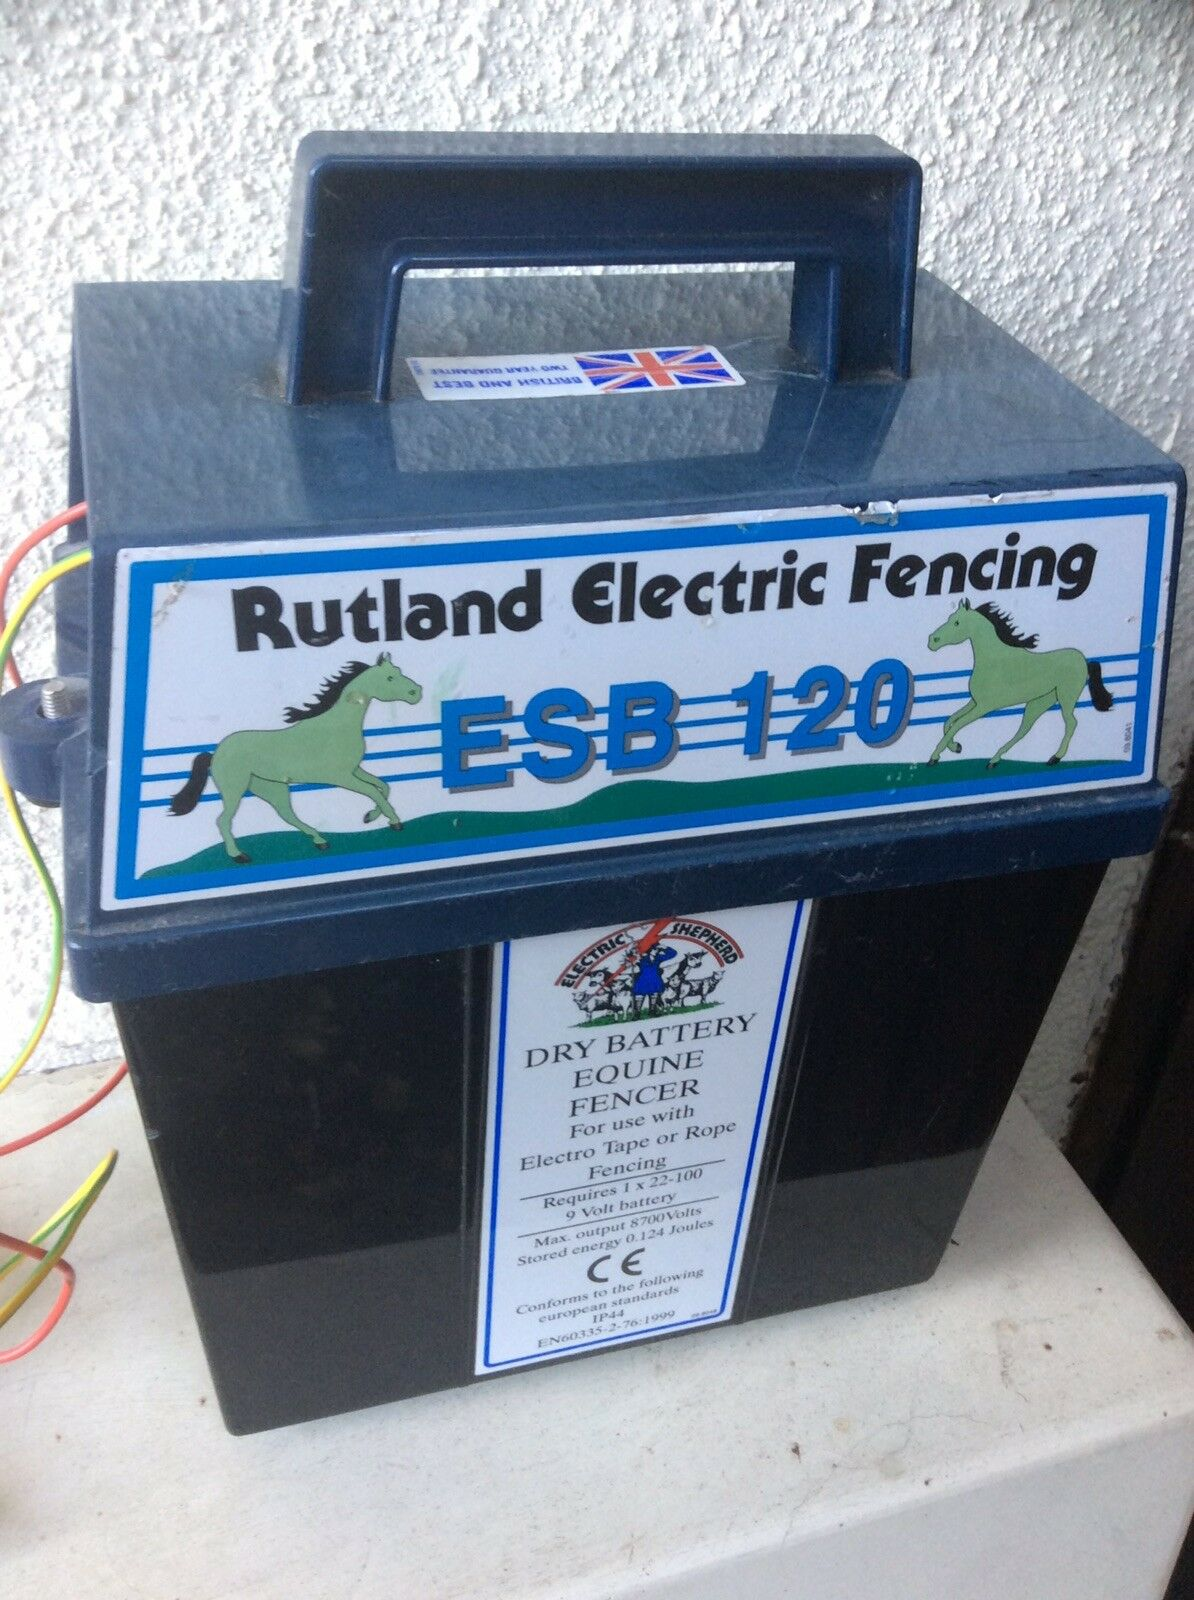 Rutland ESB120 Electric Fence Energiser. Dry battery type. perfect working order